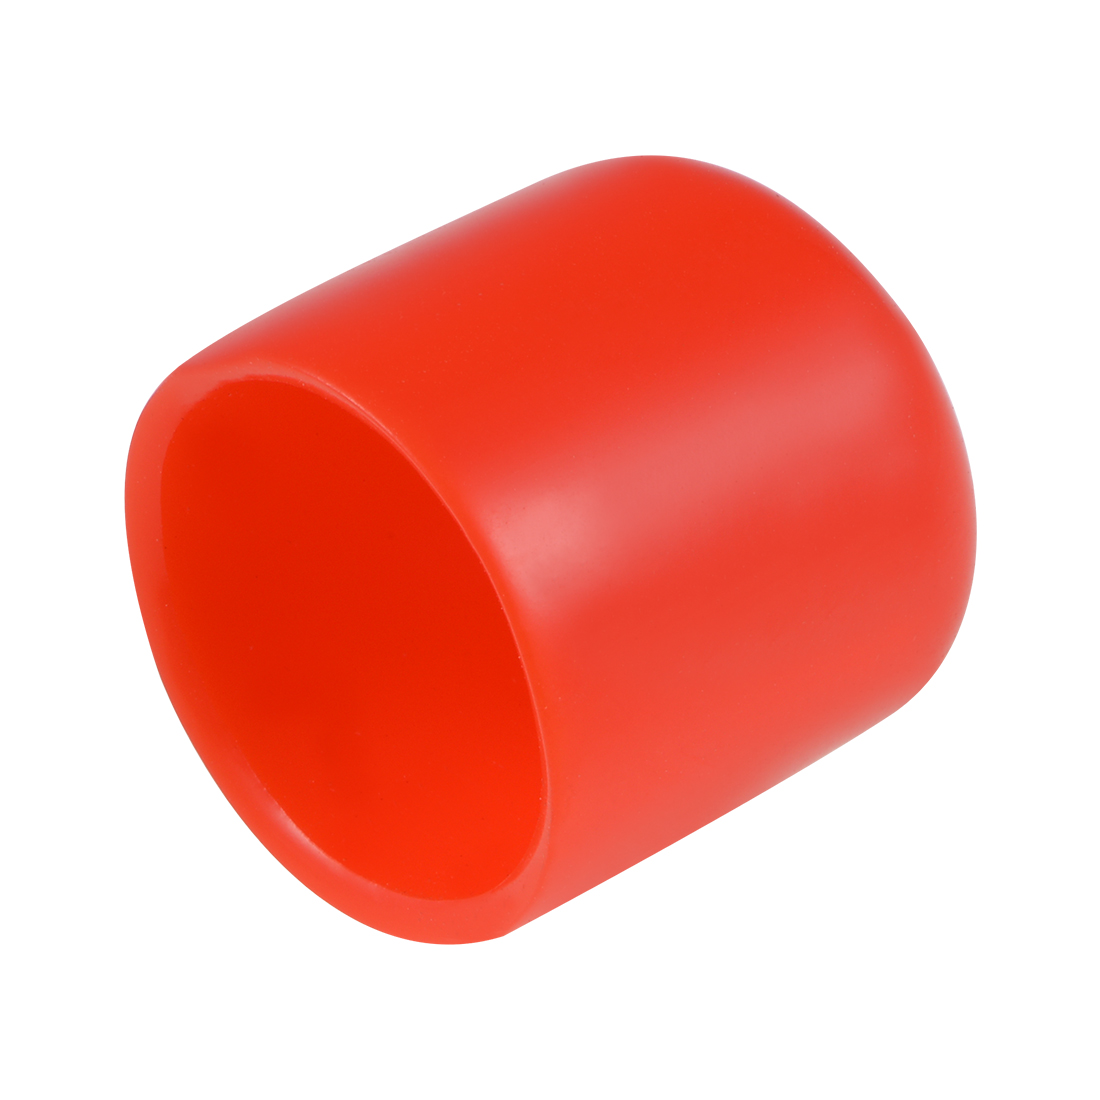 Screw Thread Protector, 21mm ID Round End Cap Cover Red Tube Caps 10pcs